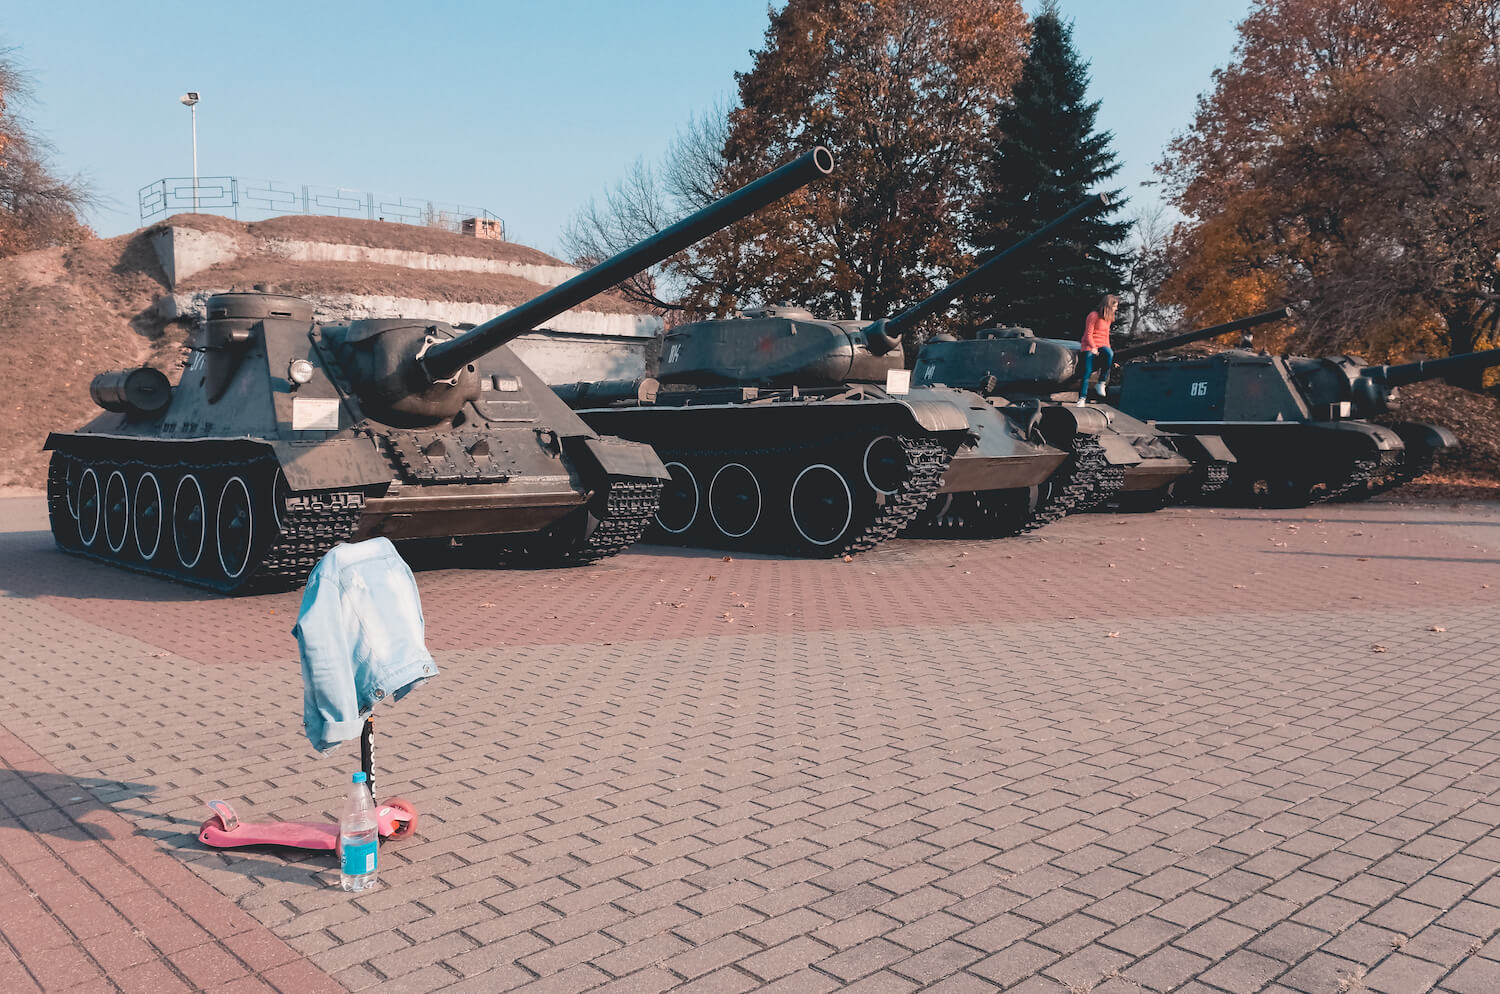 Tanks in Belarus, is it safe to travel solo to Belarus